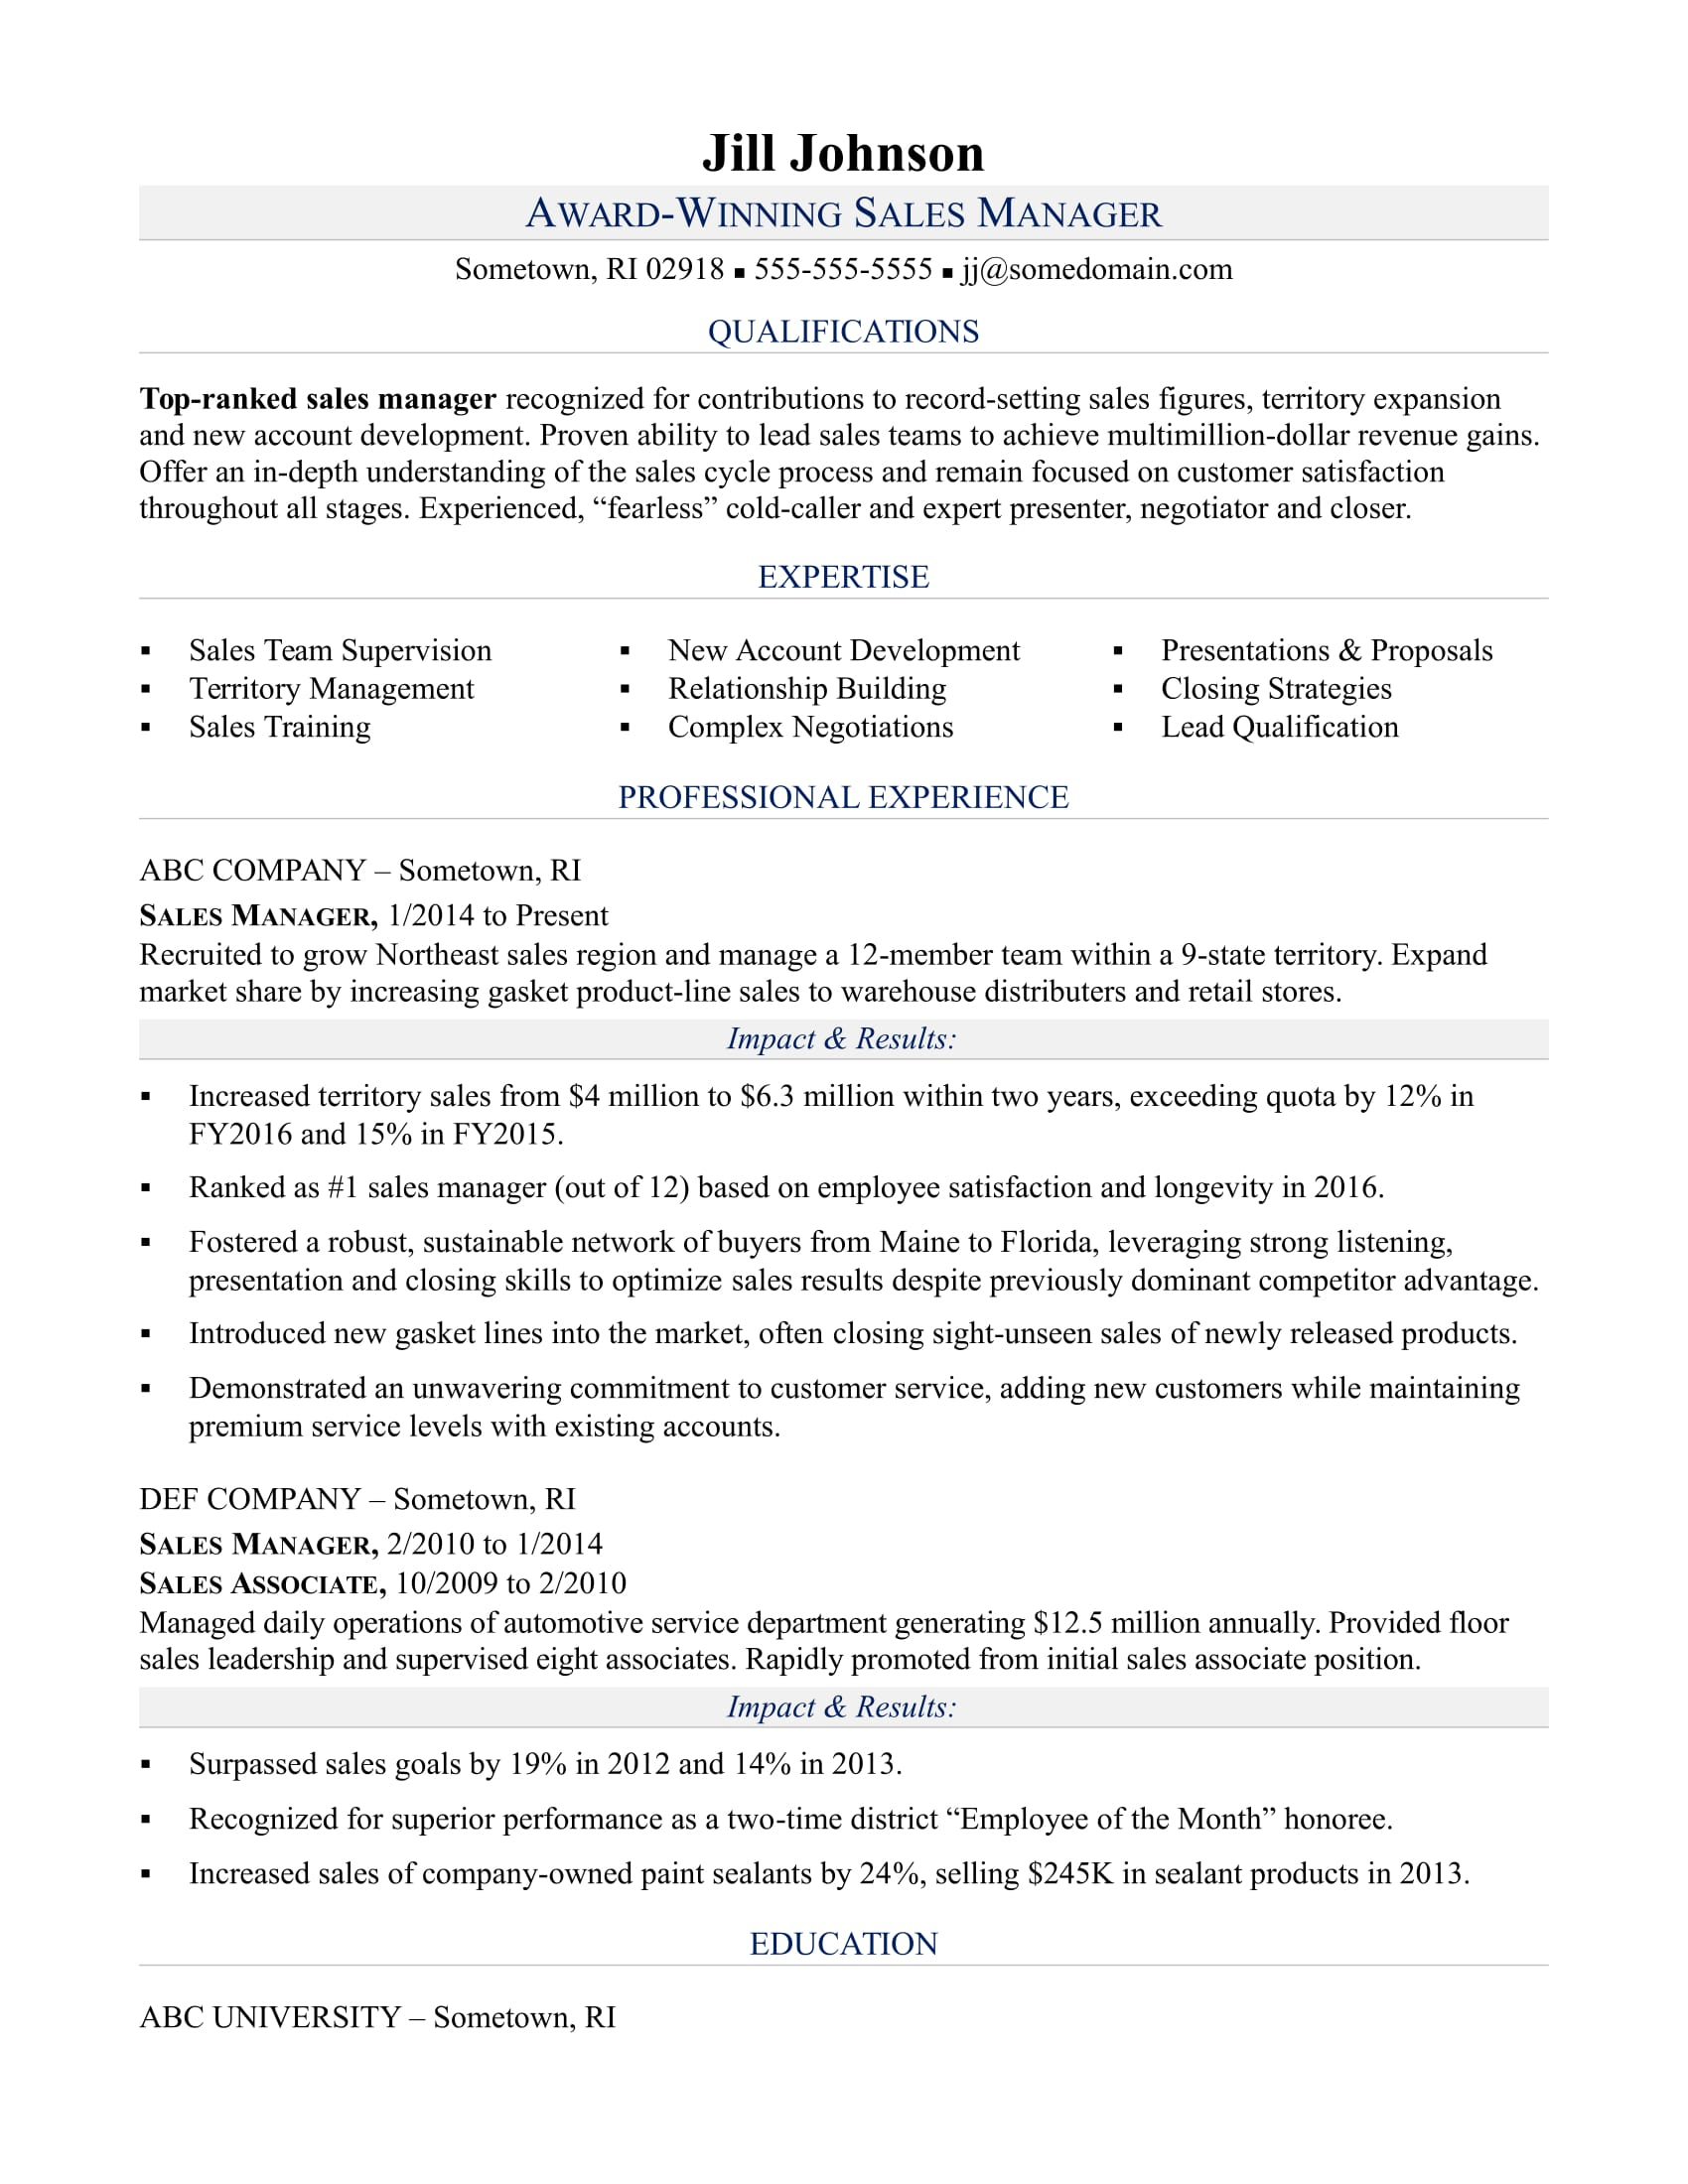 sample resume for a sales manager - Account Manager Resume Examples